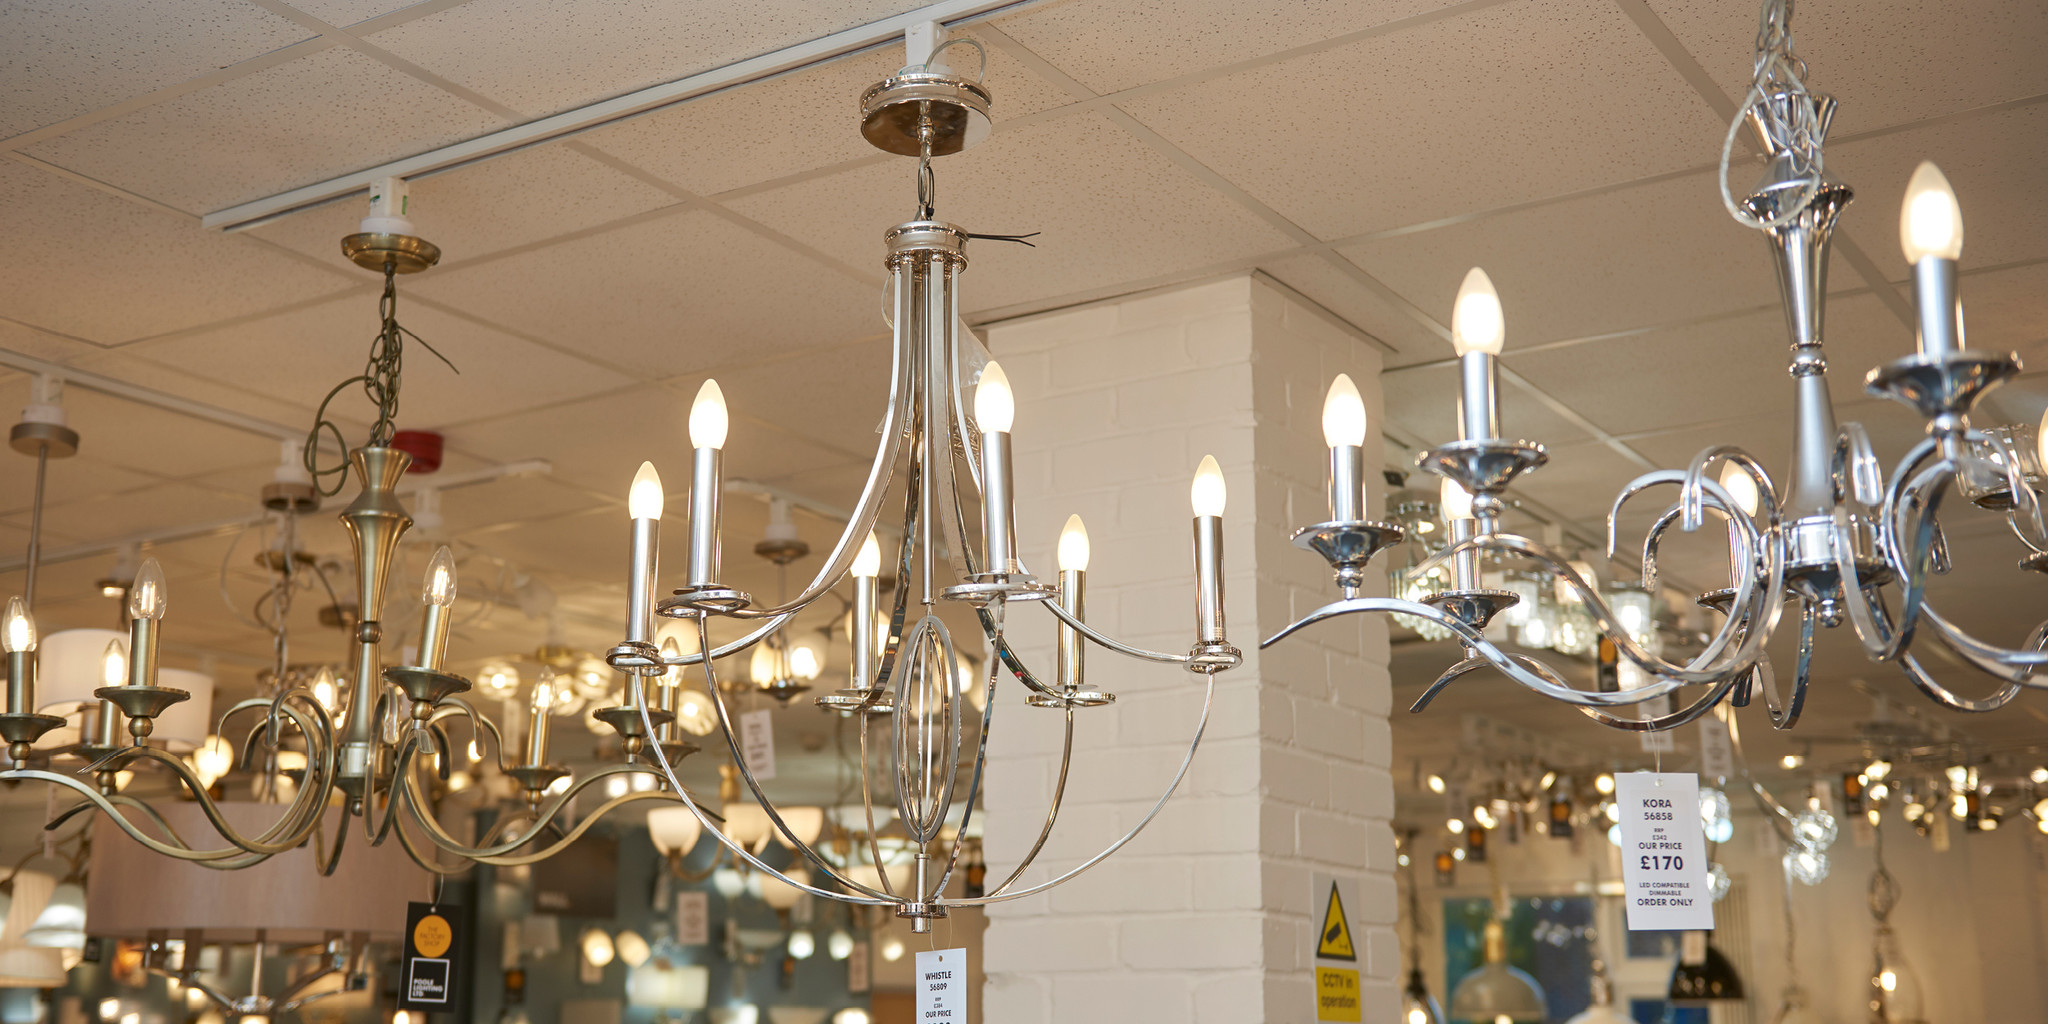 The Factory Shop hanging ceiling lights